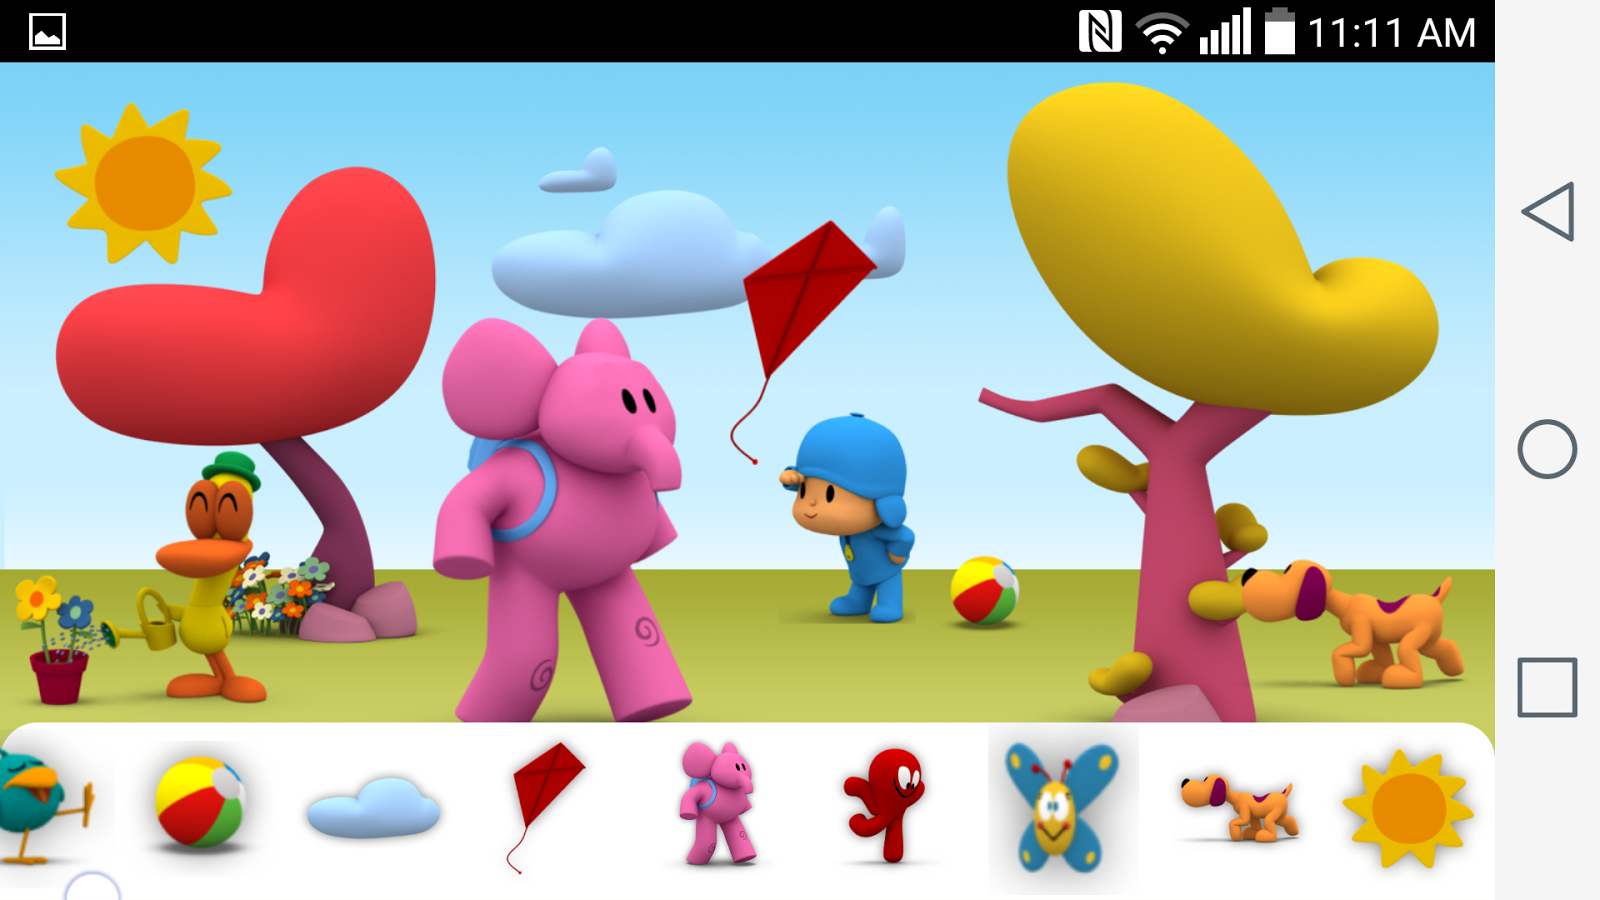 Hd Puzzle Wallpaper Pocoyo Album Android Apps On Google Play